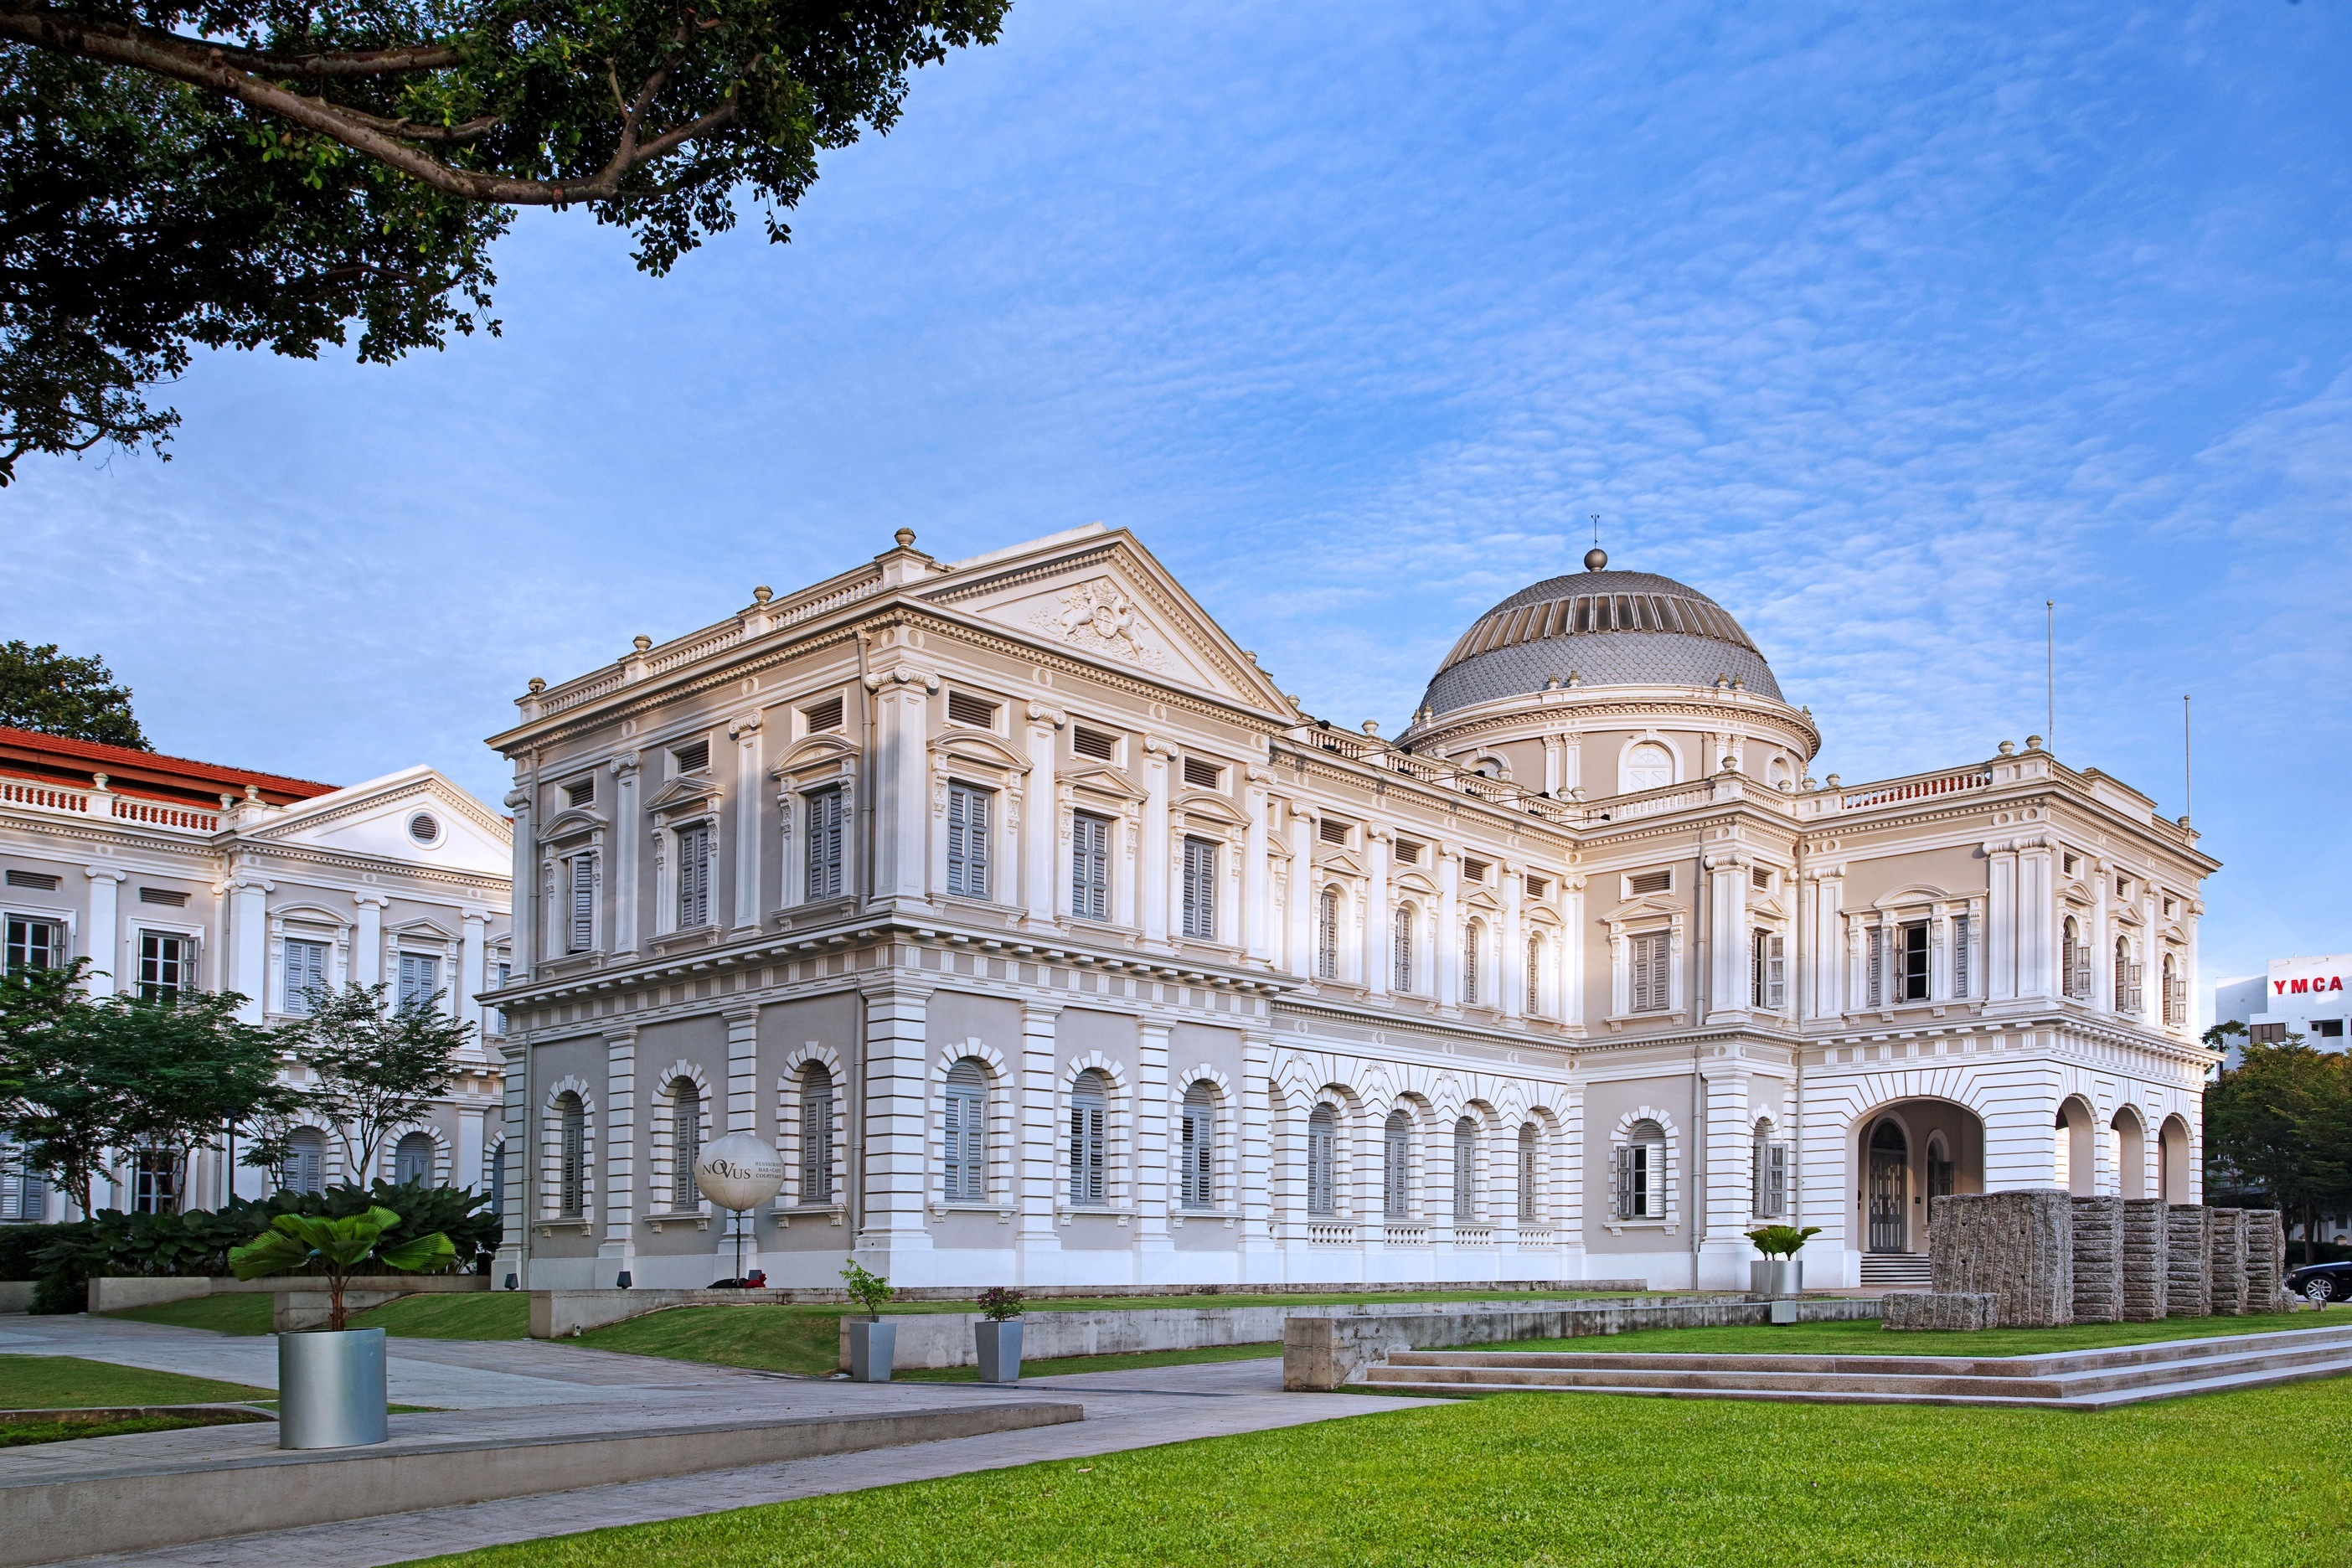 national museum The national museum of singapore is the oldest museum in singaporeits history dates back to 1849, when it was started as a section of a library at singapore institution and called the raffles library and museum.